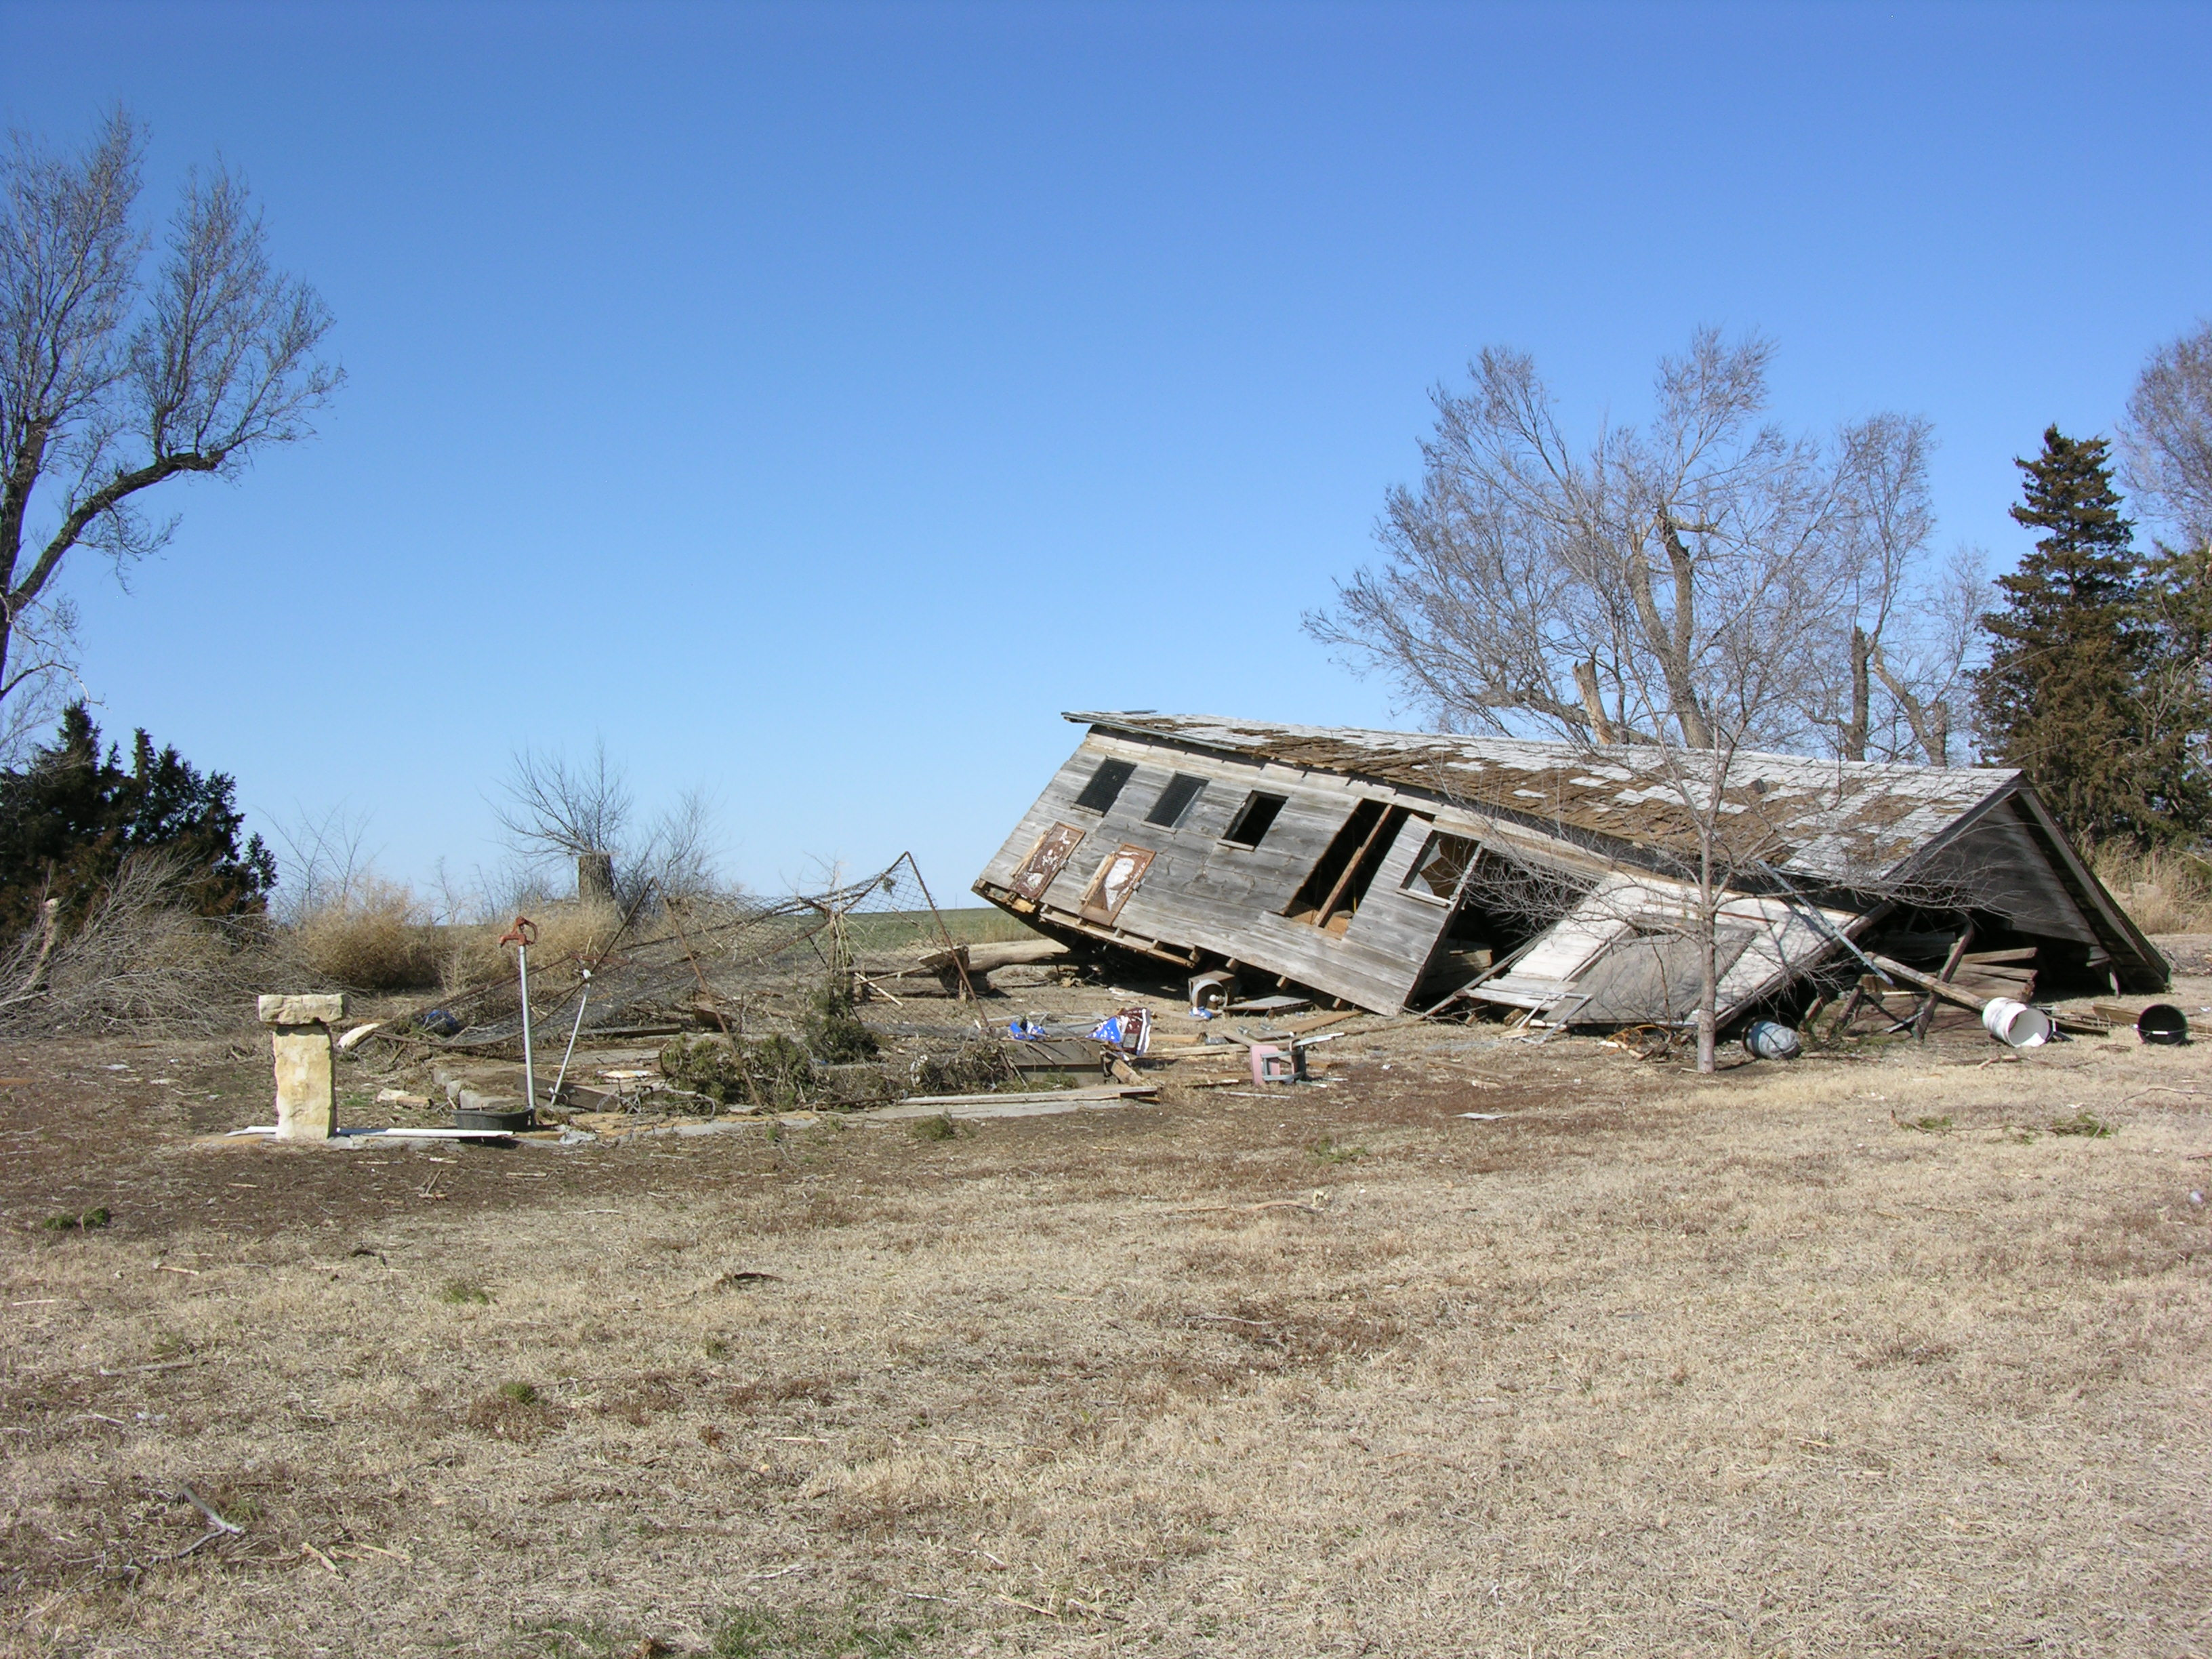 Kansas jewell county randall - Barn Displaced From Foundation As A Reult Of An Ef0 Tornado In Jewell County Kansas On